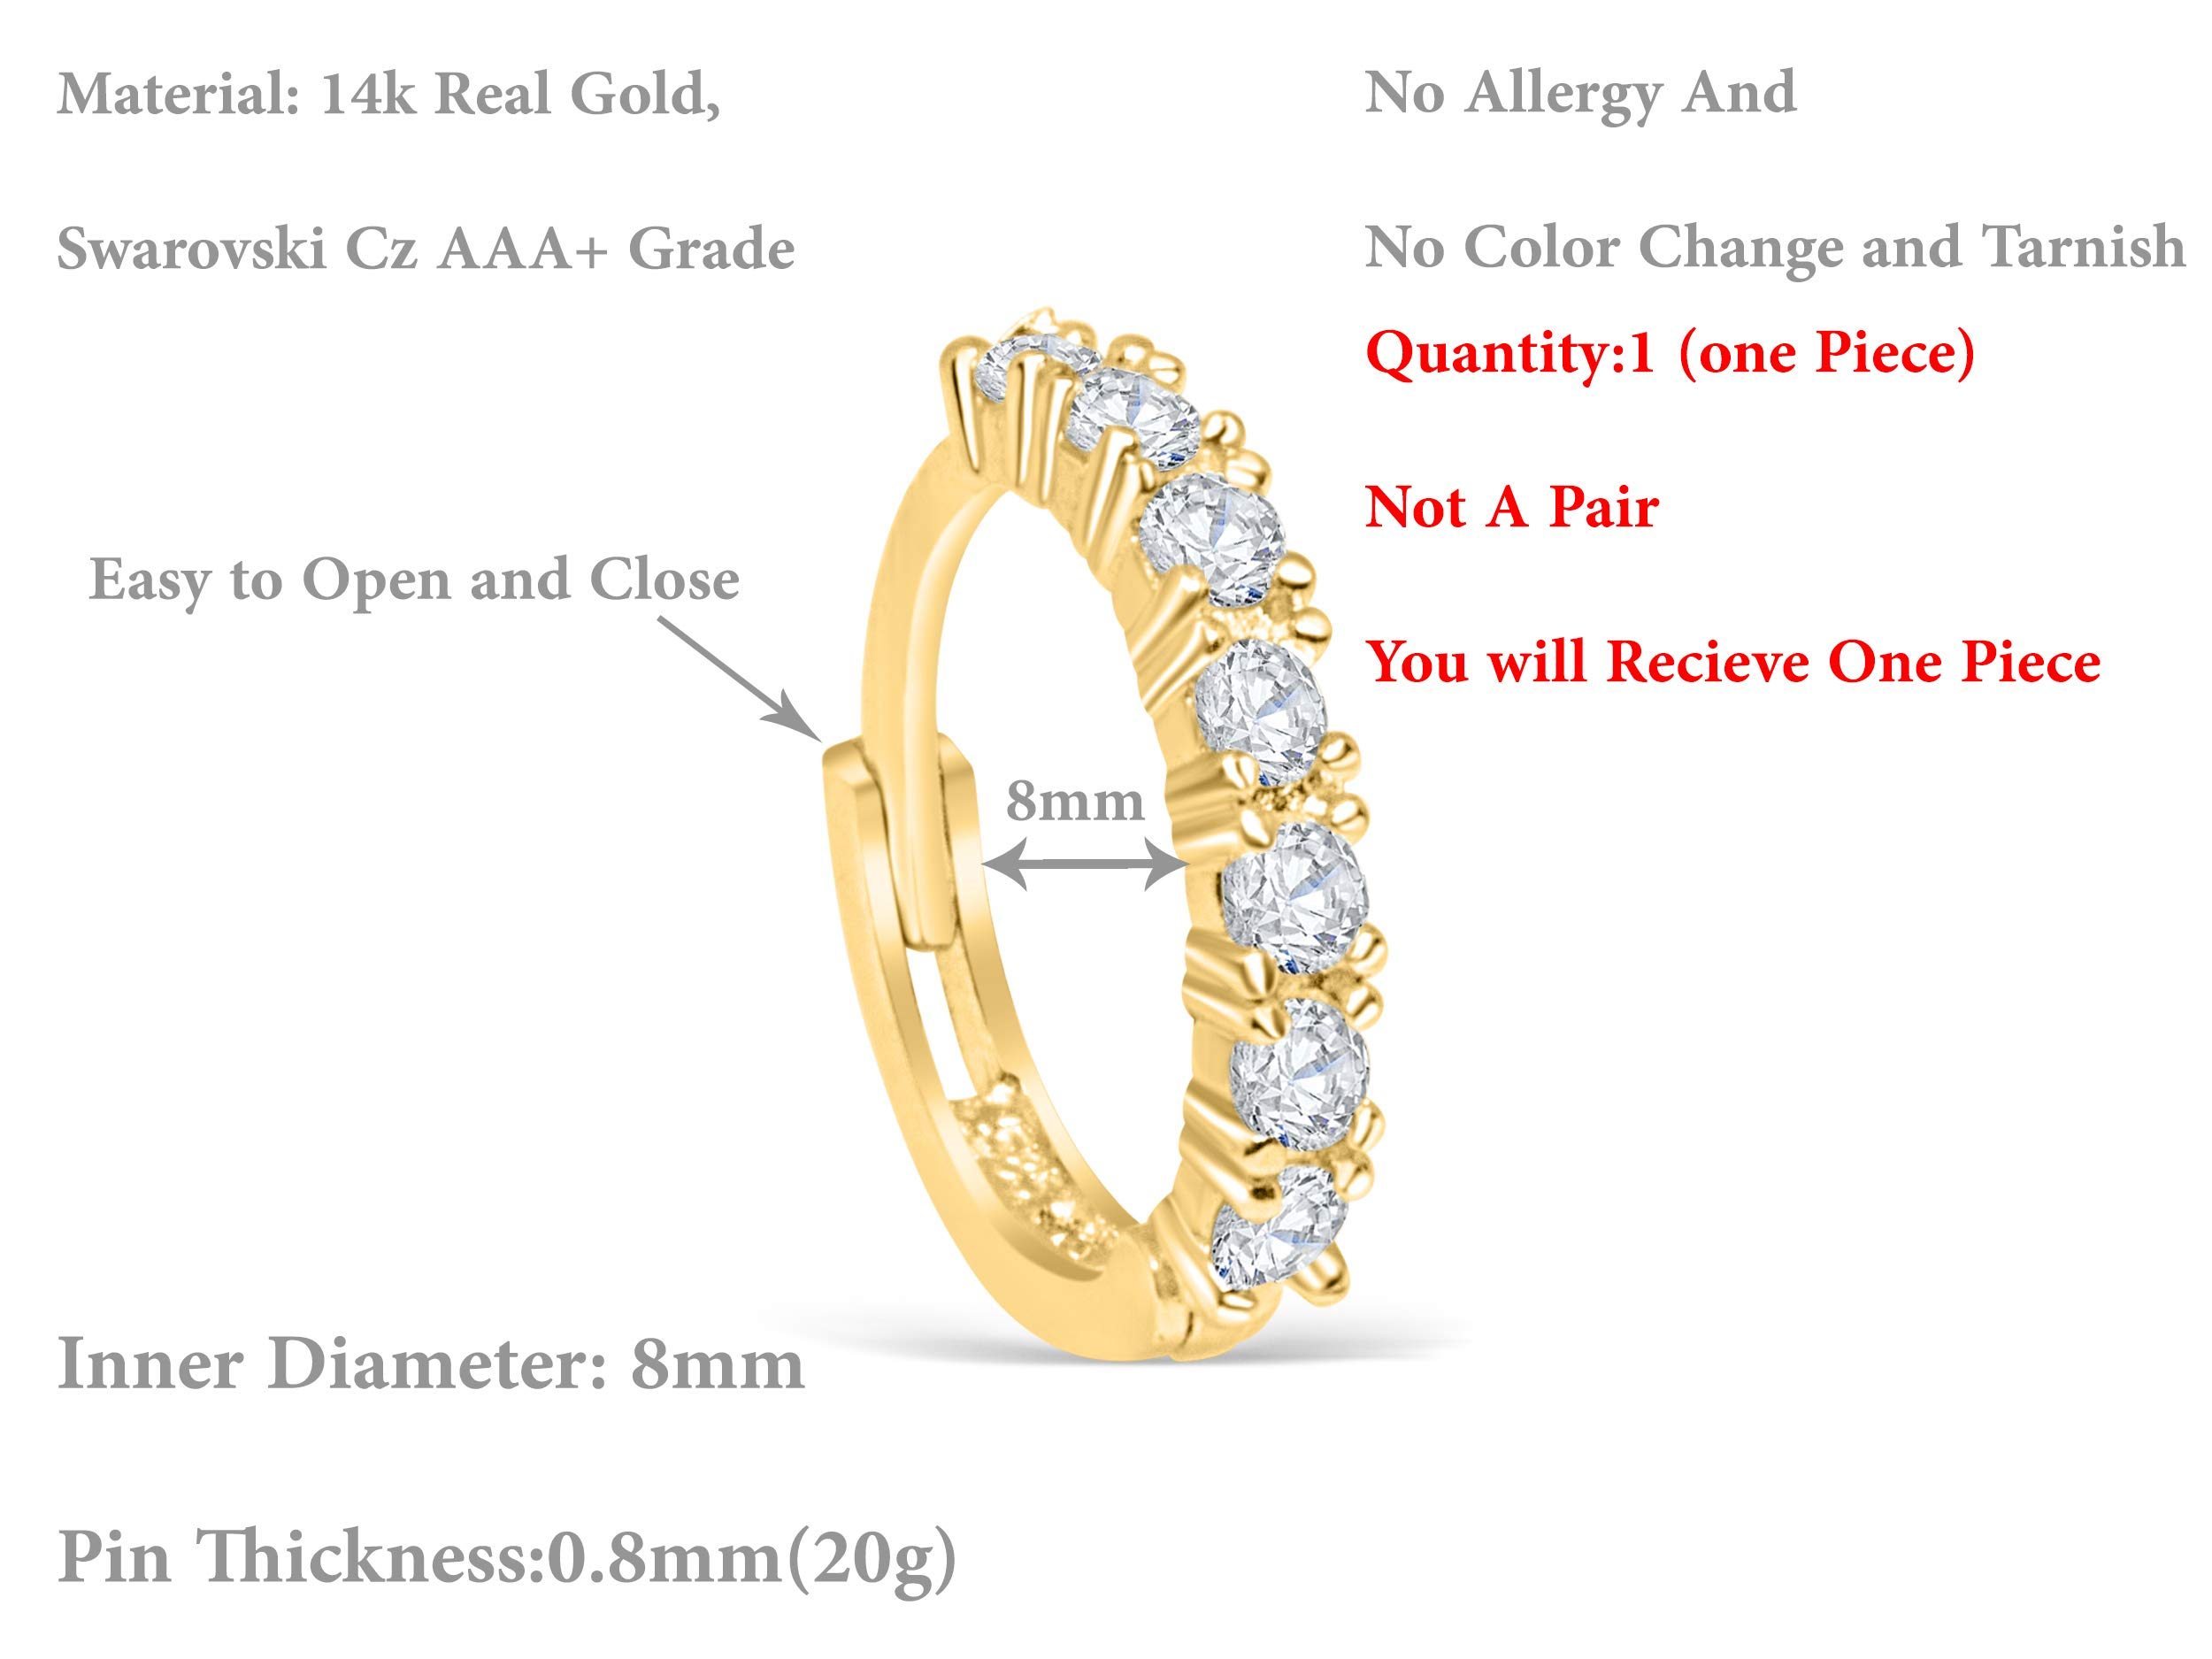 14K Real Solid Gold Jewelry Cz 8mm Open Round Circle Tragus Cartilage Snug Inner Outer Conch Daith Helix Ear Segment Clicker Huggie Hoop Ring Piercing Earring For Women by ONDAISY (Image #2)